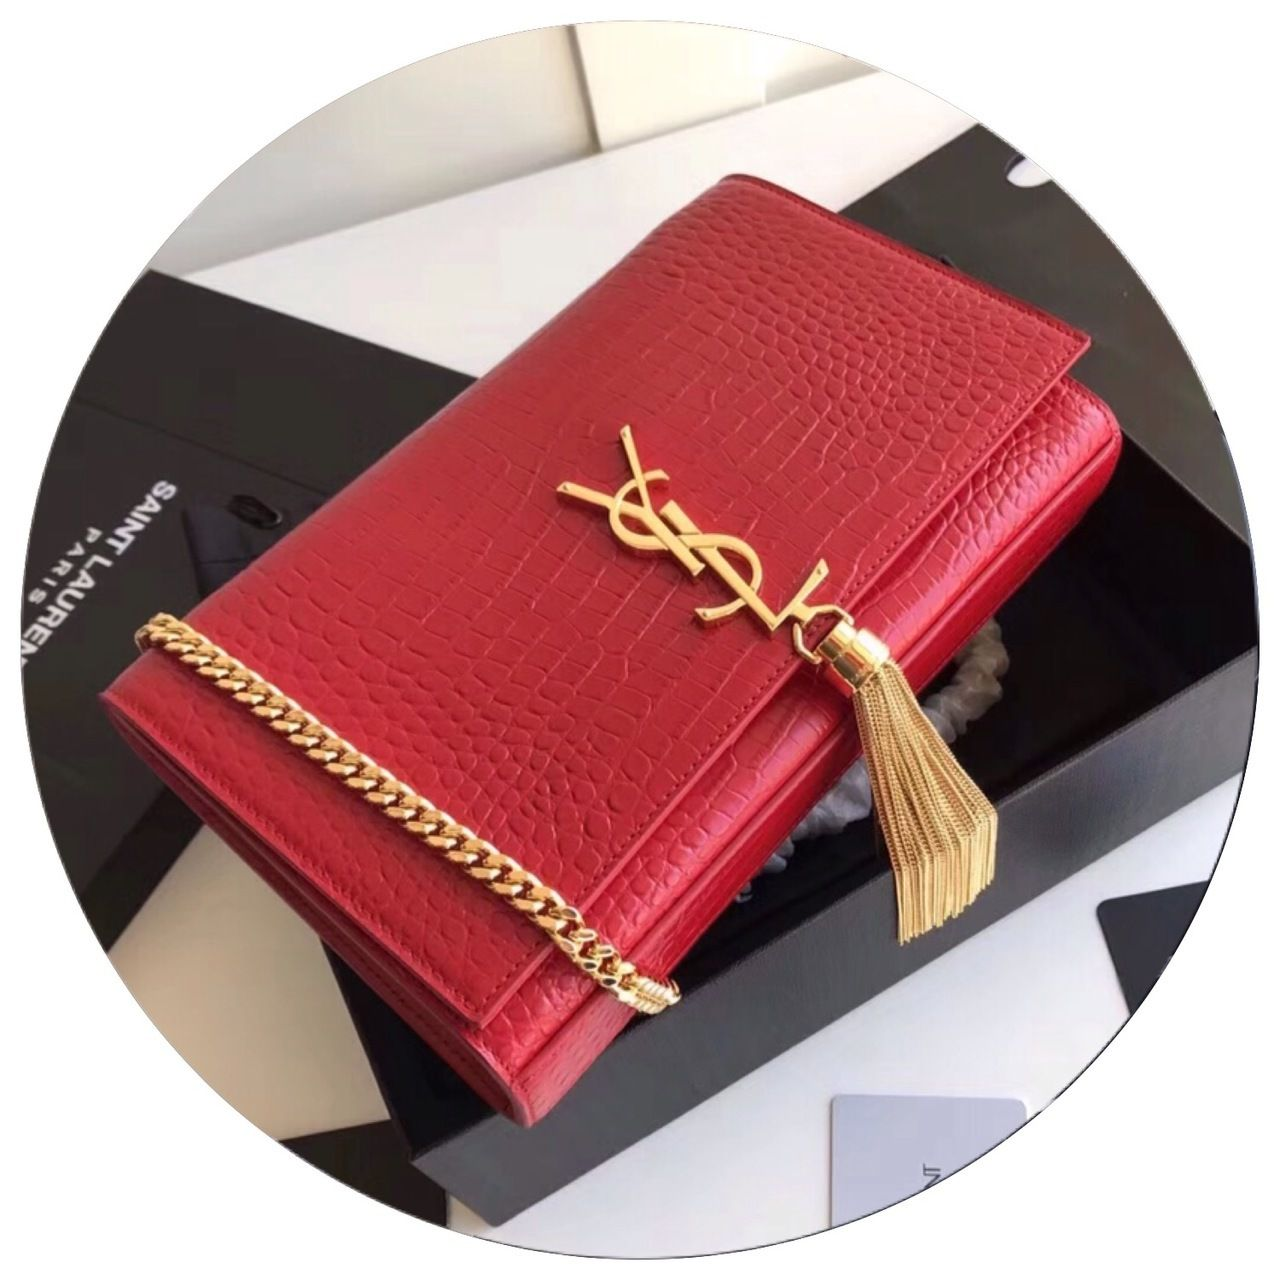 0dad524fe38 Saint Laurent CLASSIC MEDIUM KATE TASSEL SATCHEL IN RED CROCODILE EMBOSSED  SHINY LEATHER WITH GOLD HARDWARE - Bella Vita Moda #ysl bag #ysllover ...